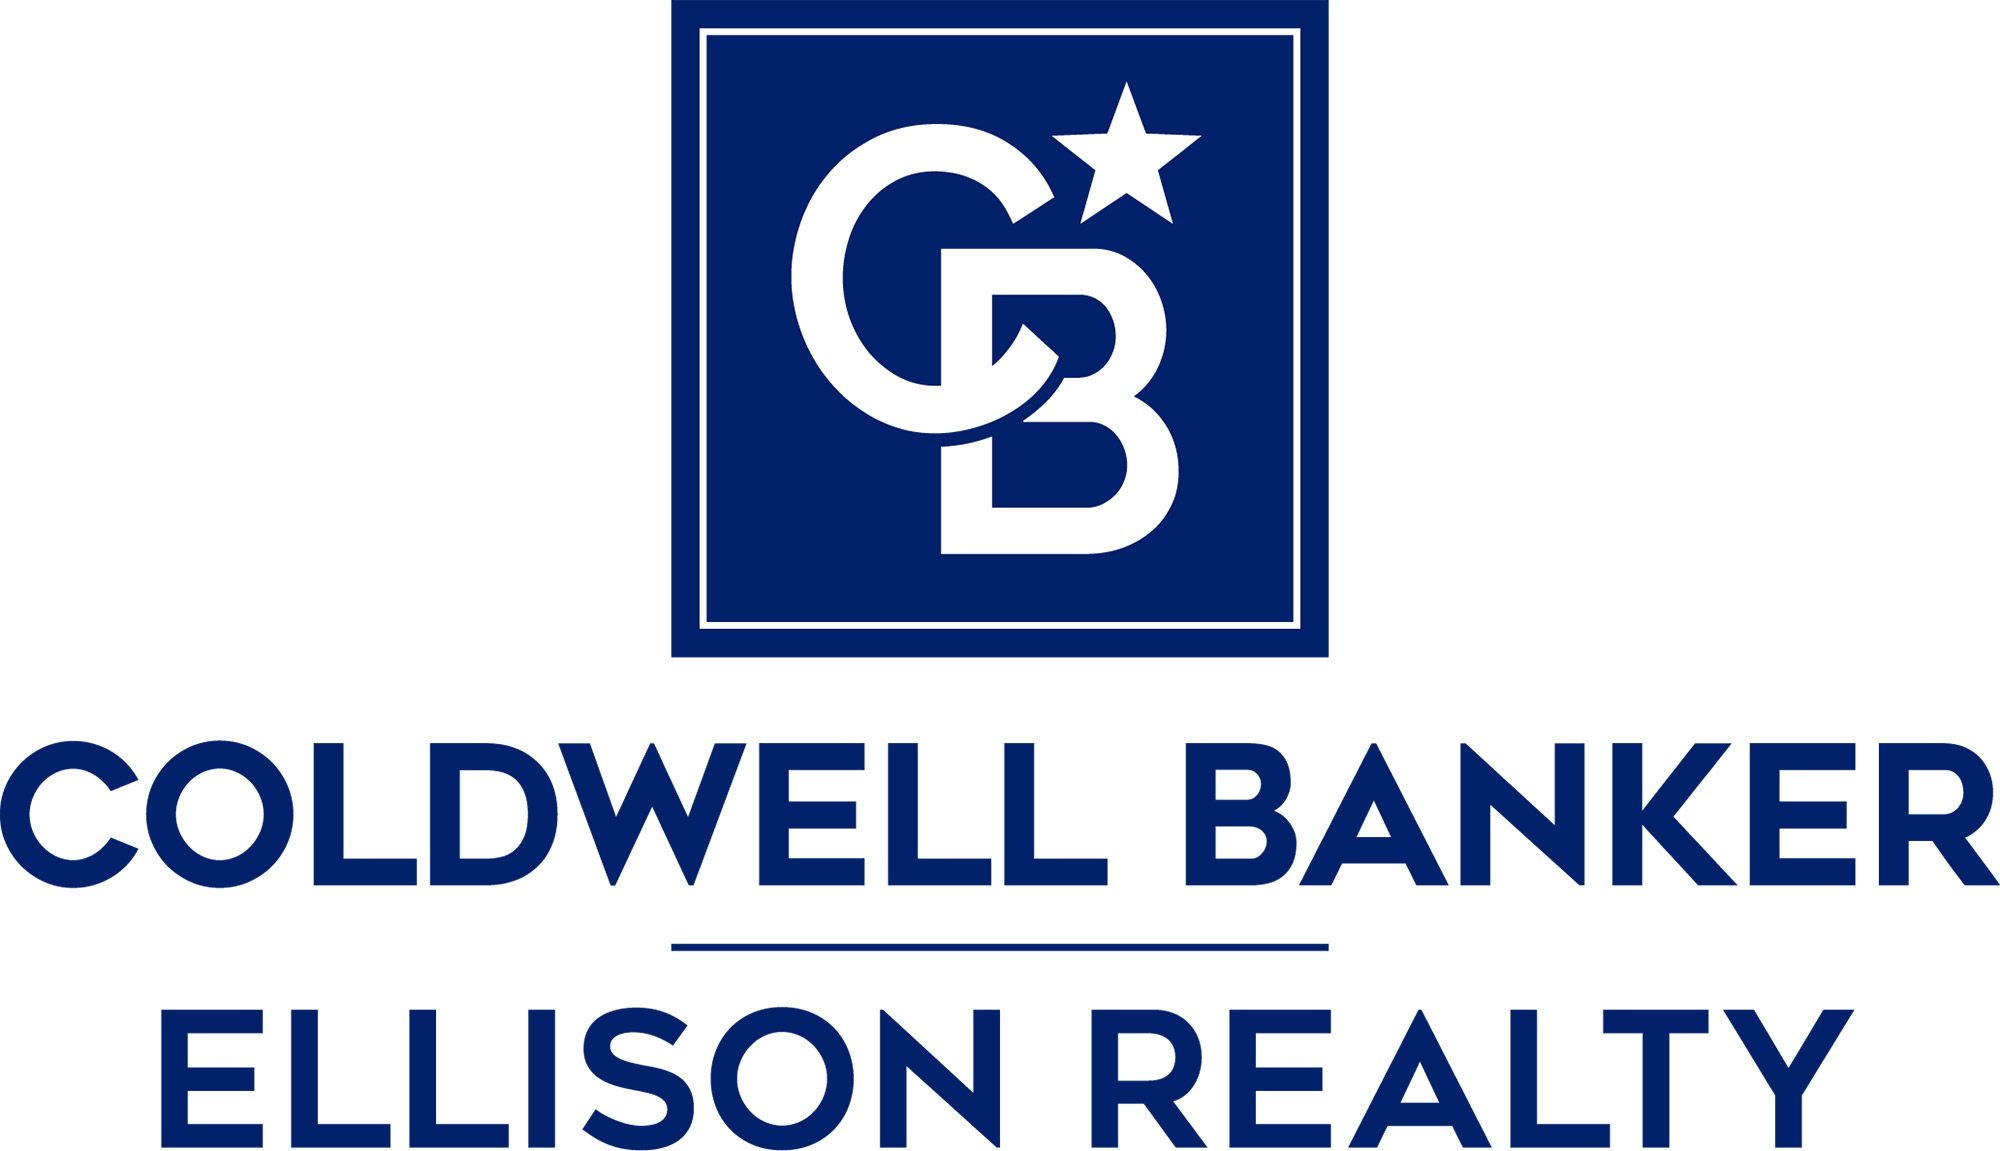 Edward Wise - Coldwell Banker Ellison Realty Logo